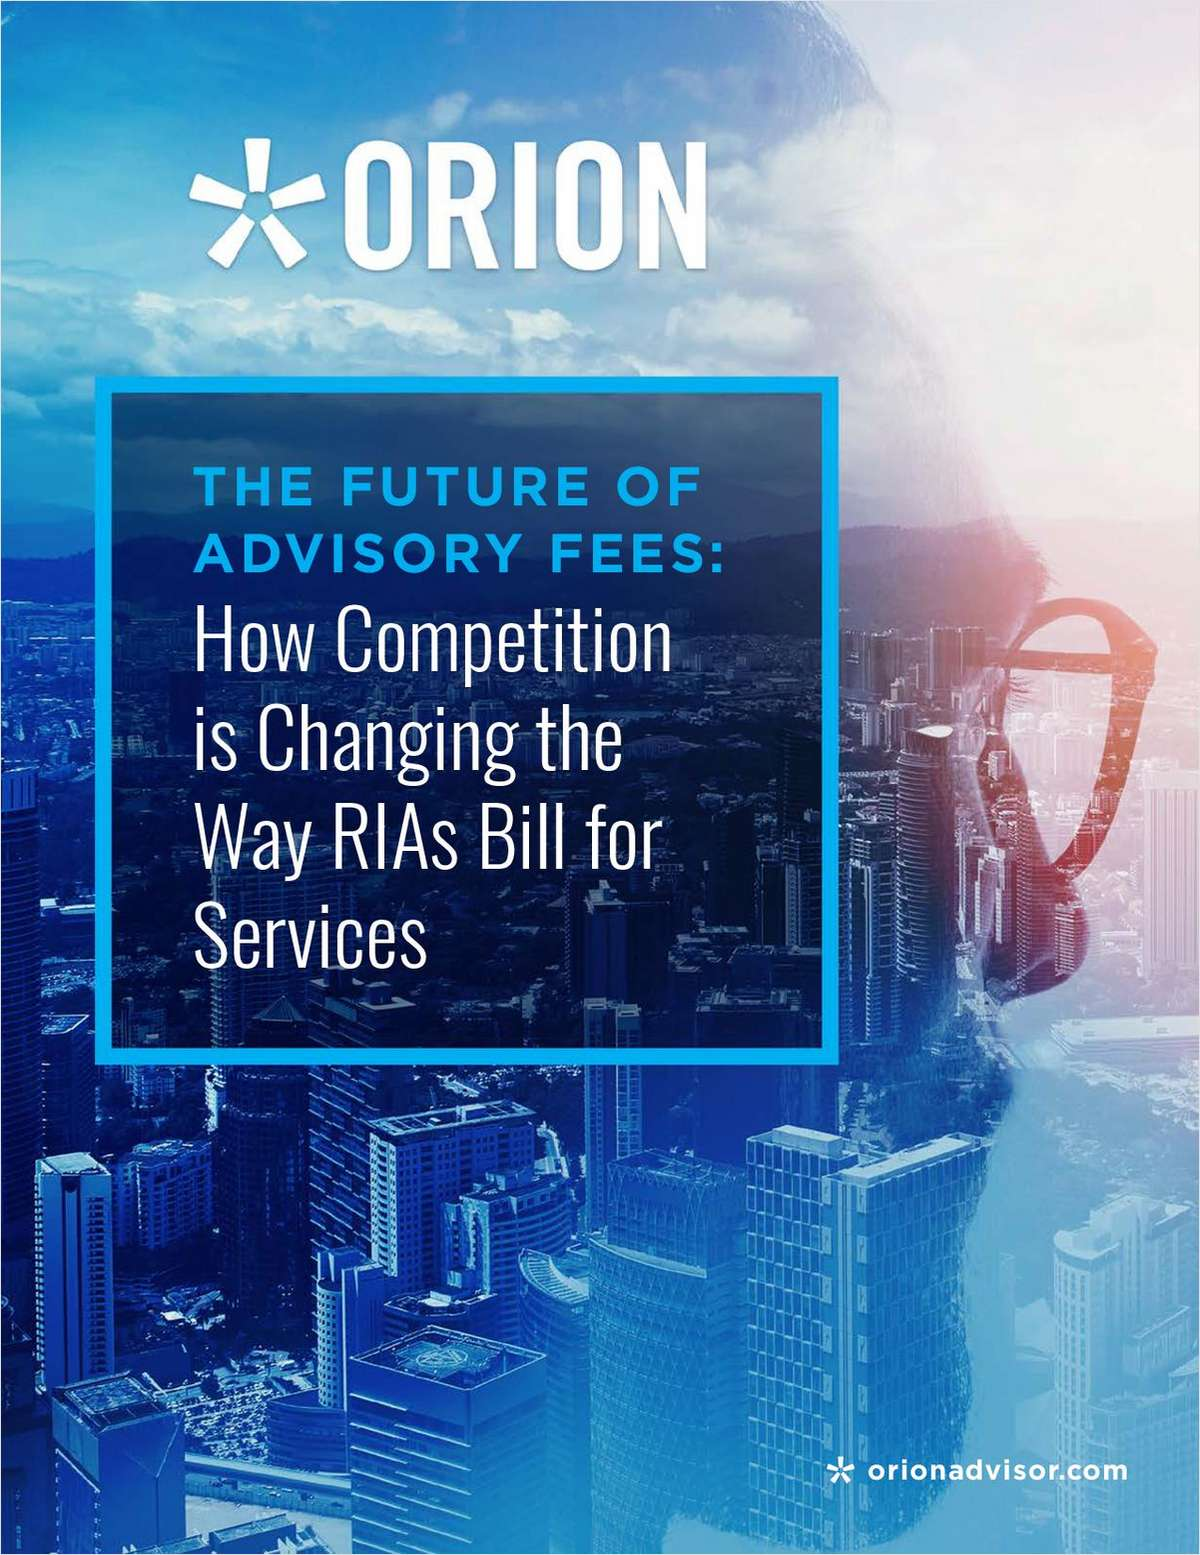 The Future of Advisory Fees: How Competition is Changing the Way RIAs Bill for Services